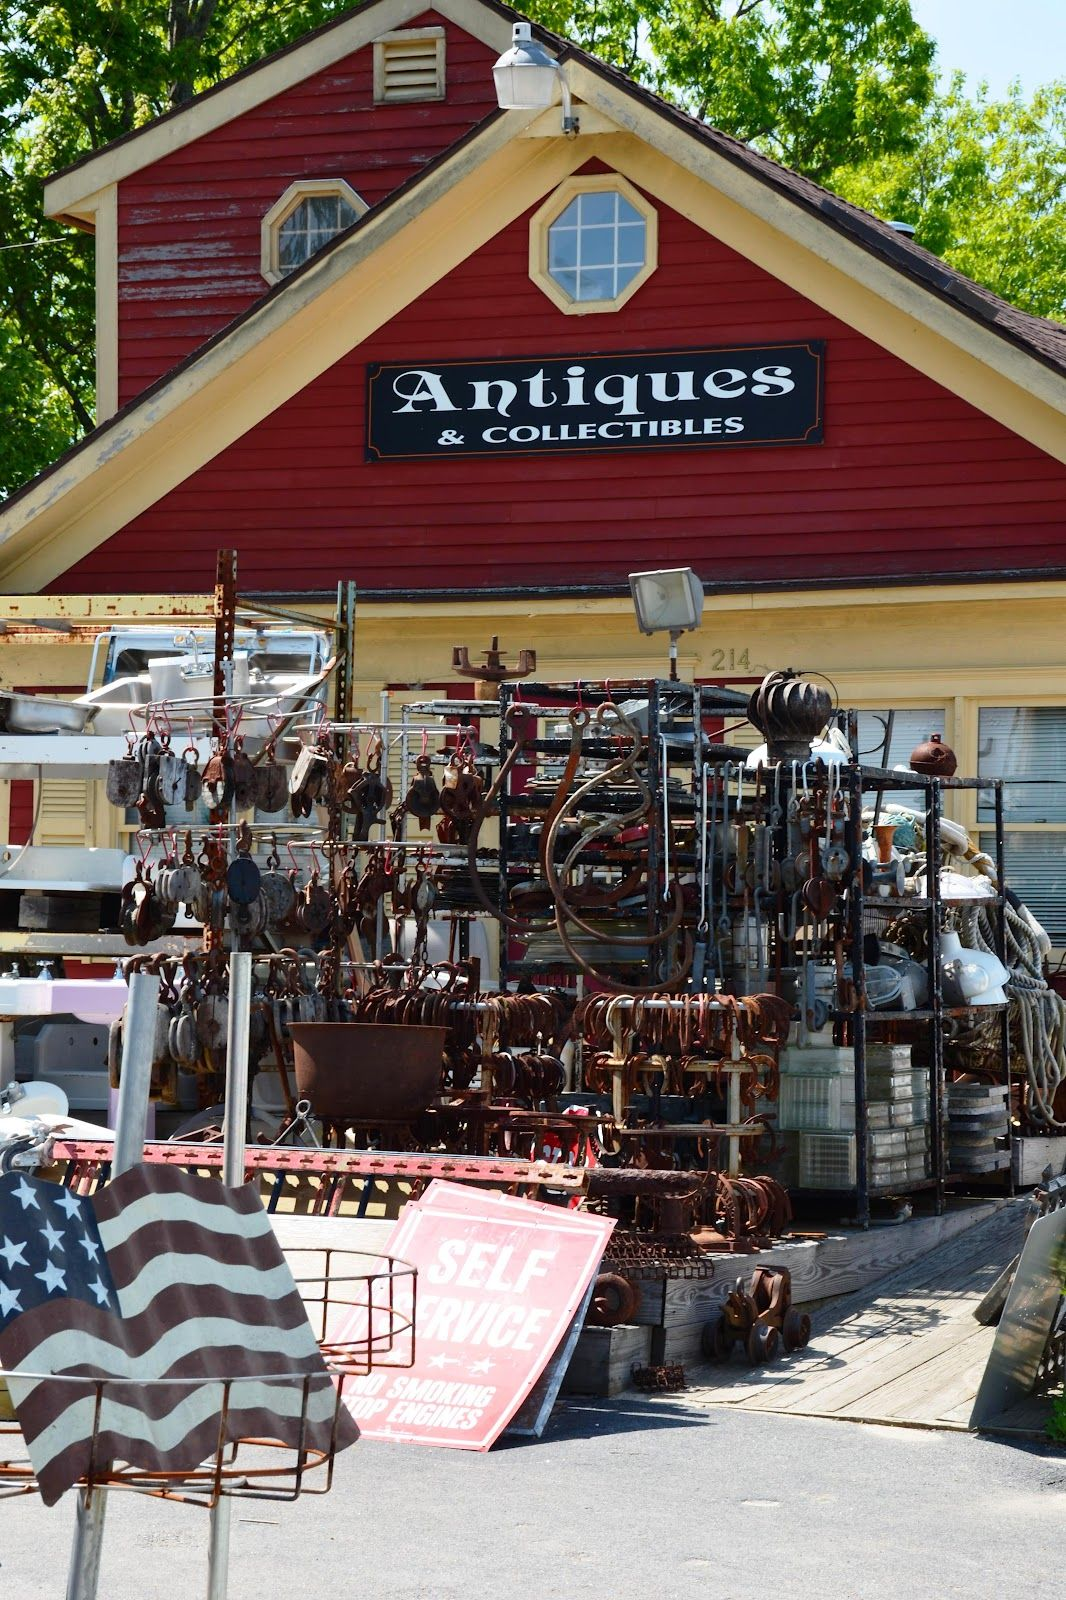 Pete S Place Hollis Maine Salvage Yard Places Yard Salvage